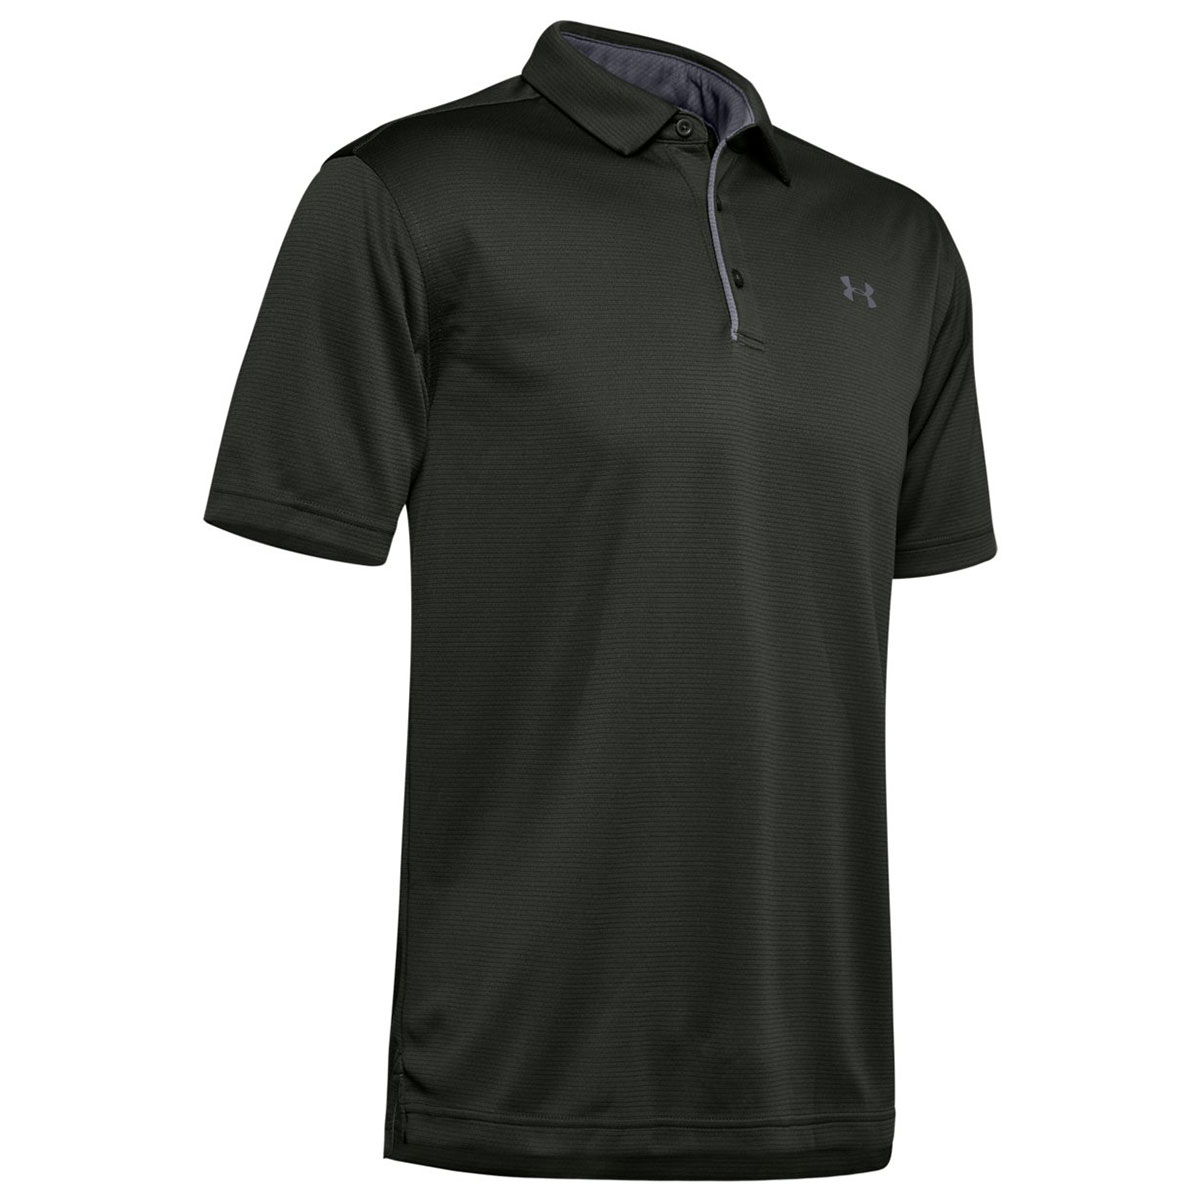 Under-Armour-Mens-Golf-Tech-Wicking-Textured-Soft-Light-Polo-Shirt thumbnail 10